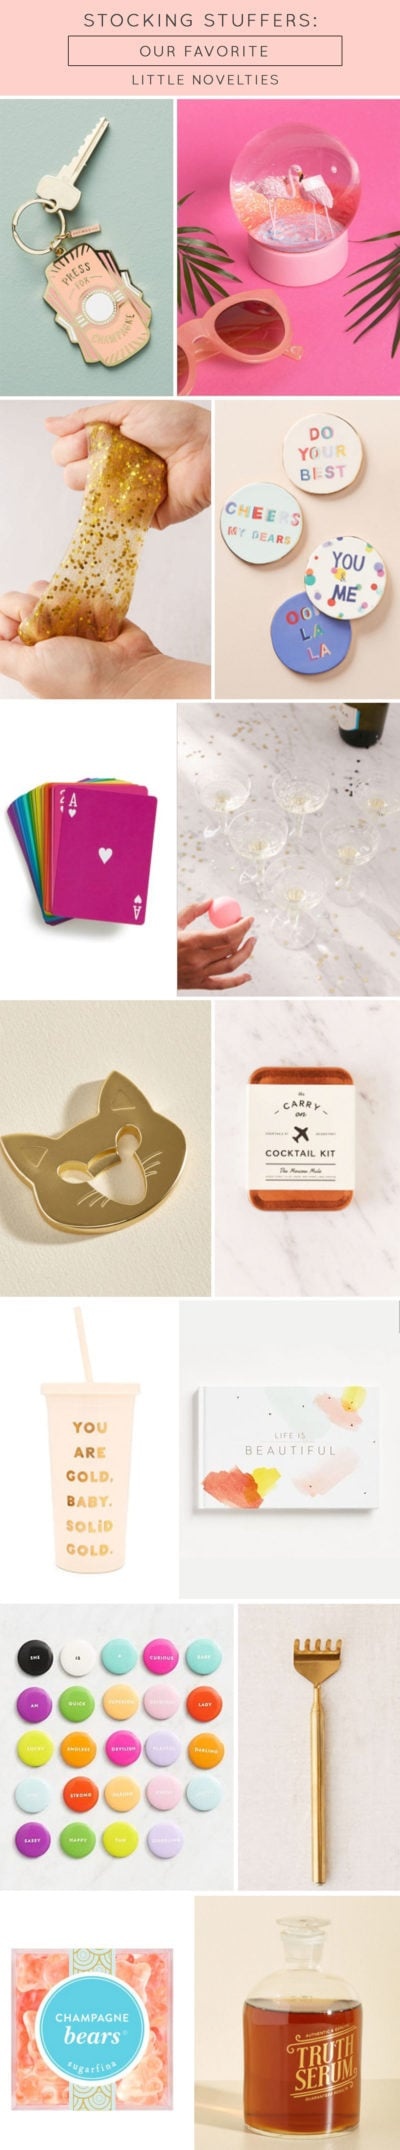 Stocking stuffers - our favorite little novelties by Ashley Rose of Sugar & Cloth, a top Houston Lifestyle Blog